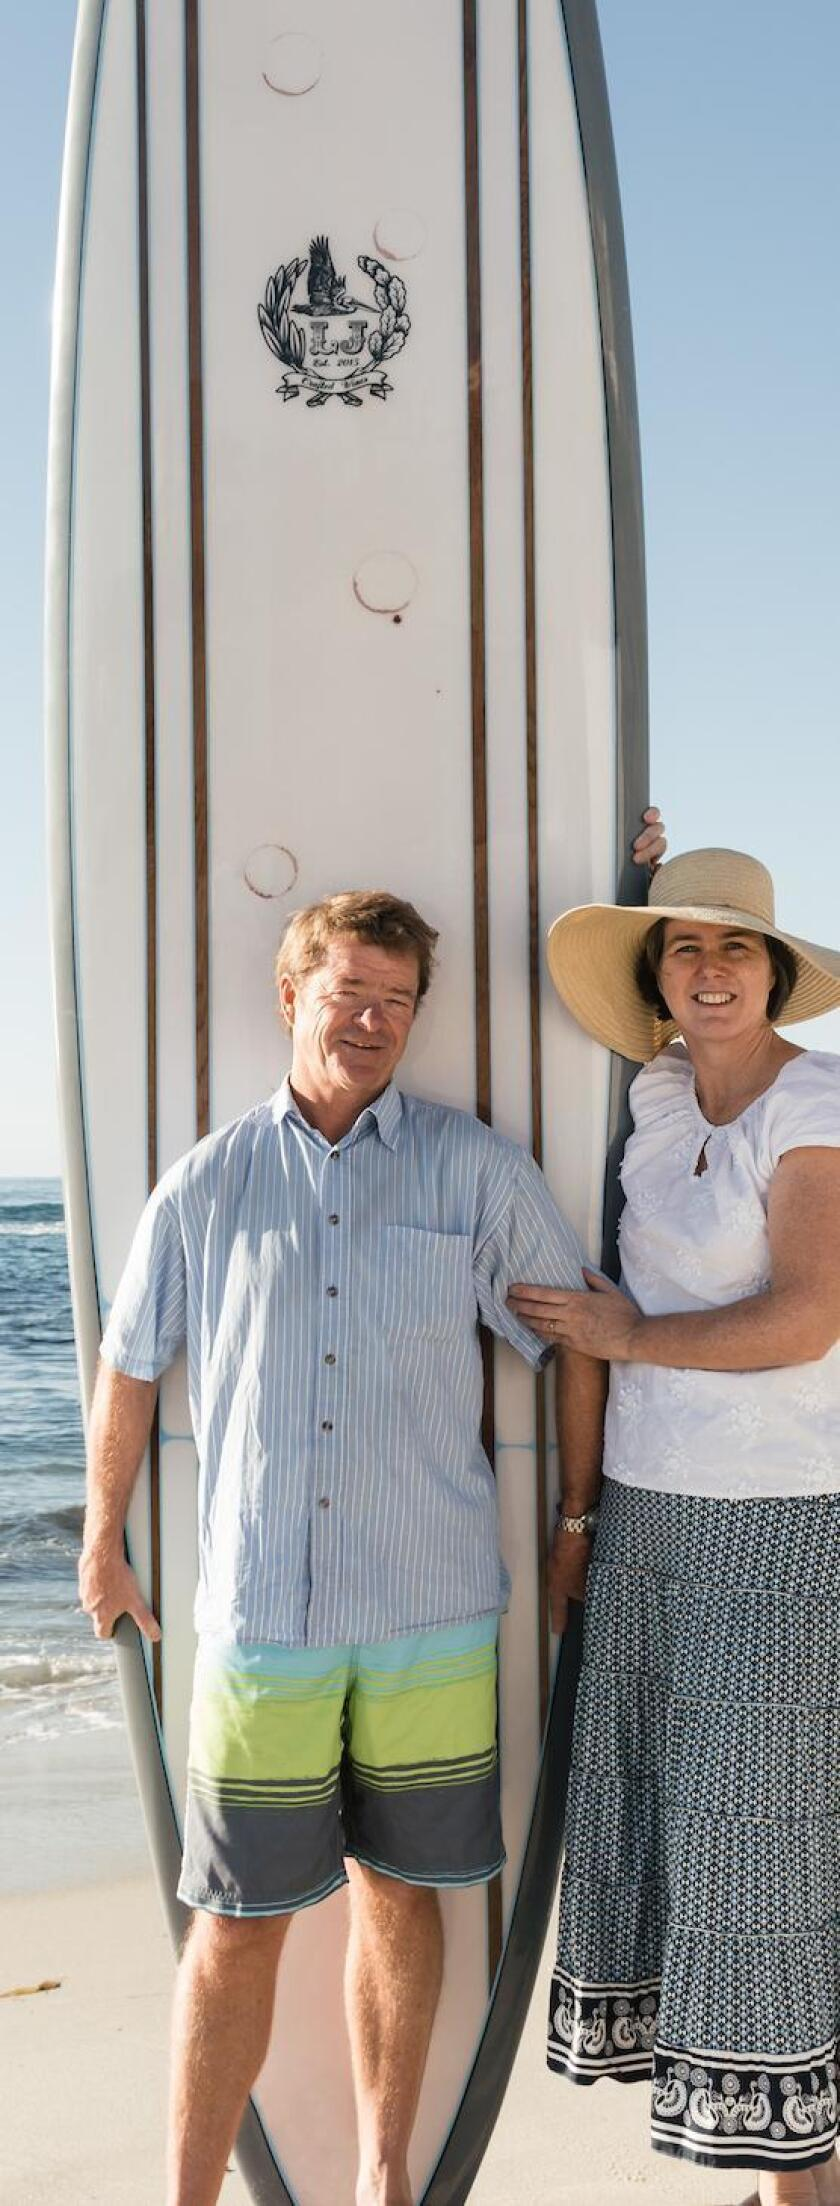 Lowell and Anne Jooste pose with a surfboard crafted by local artist, Tim Bessell. The wine rings were placed by each member of the Jooste family and intentionally designed into it.